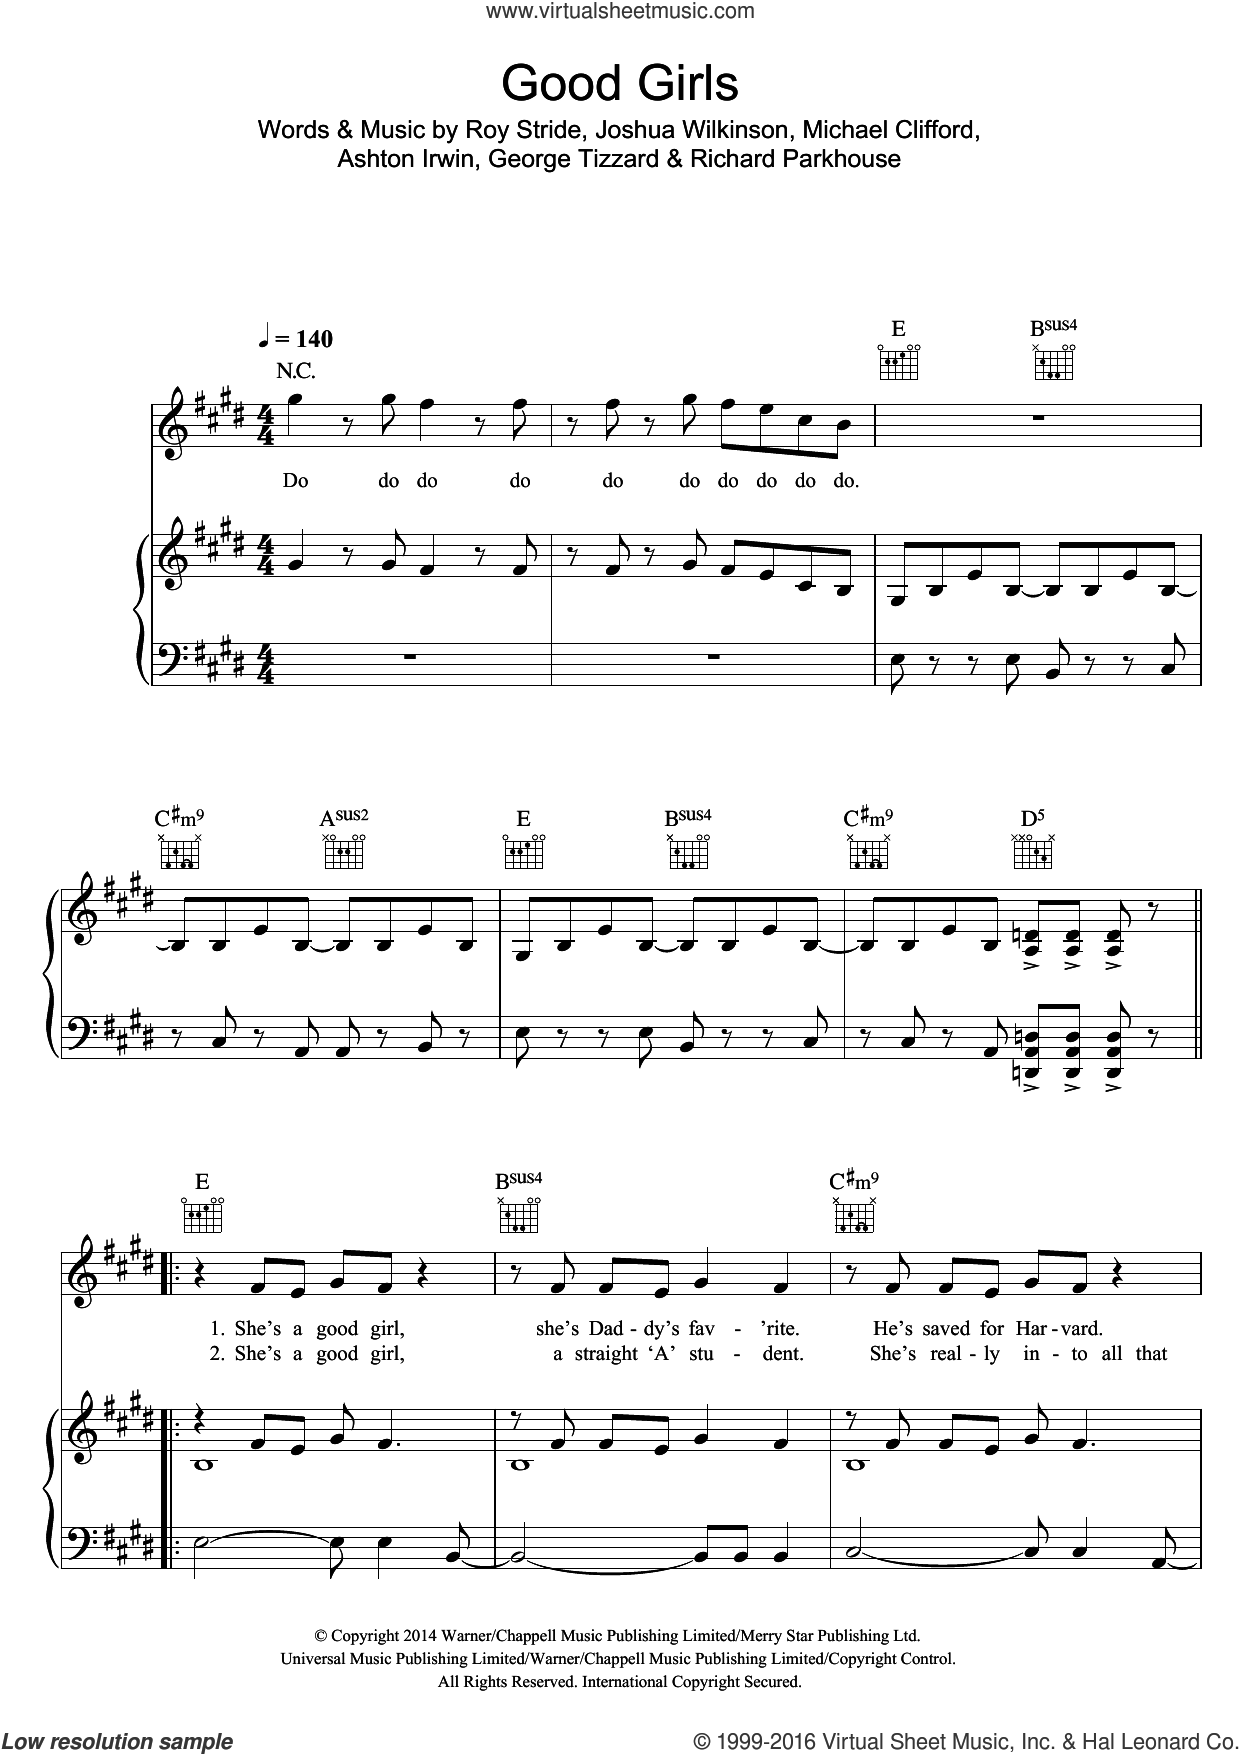 Good Girls sheet music for voice, piano or guitar by 5 Seconds of Summer, Ashton Irwin, George Tizzard, Joshua Wilkinson, Michael Clifford, Richard Parkhouse and Roy Stride, intermediate skill level